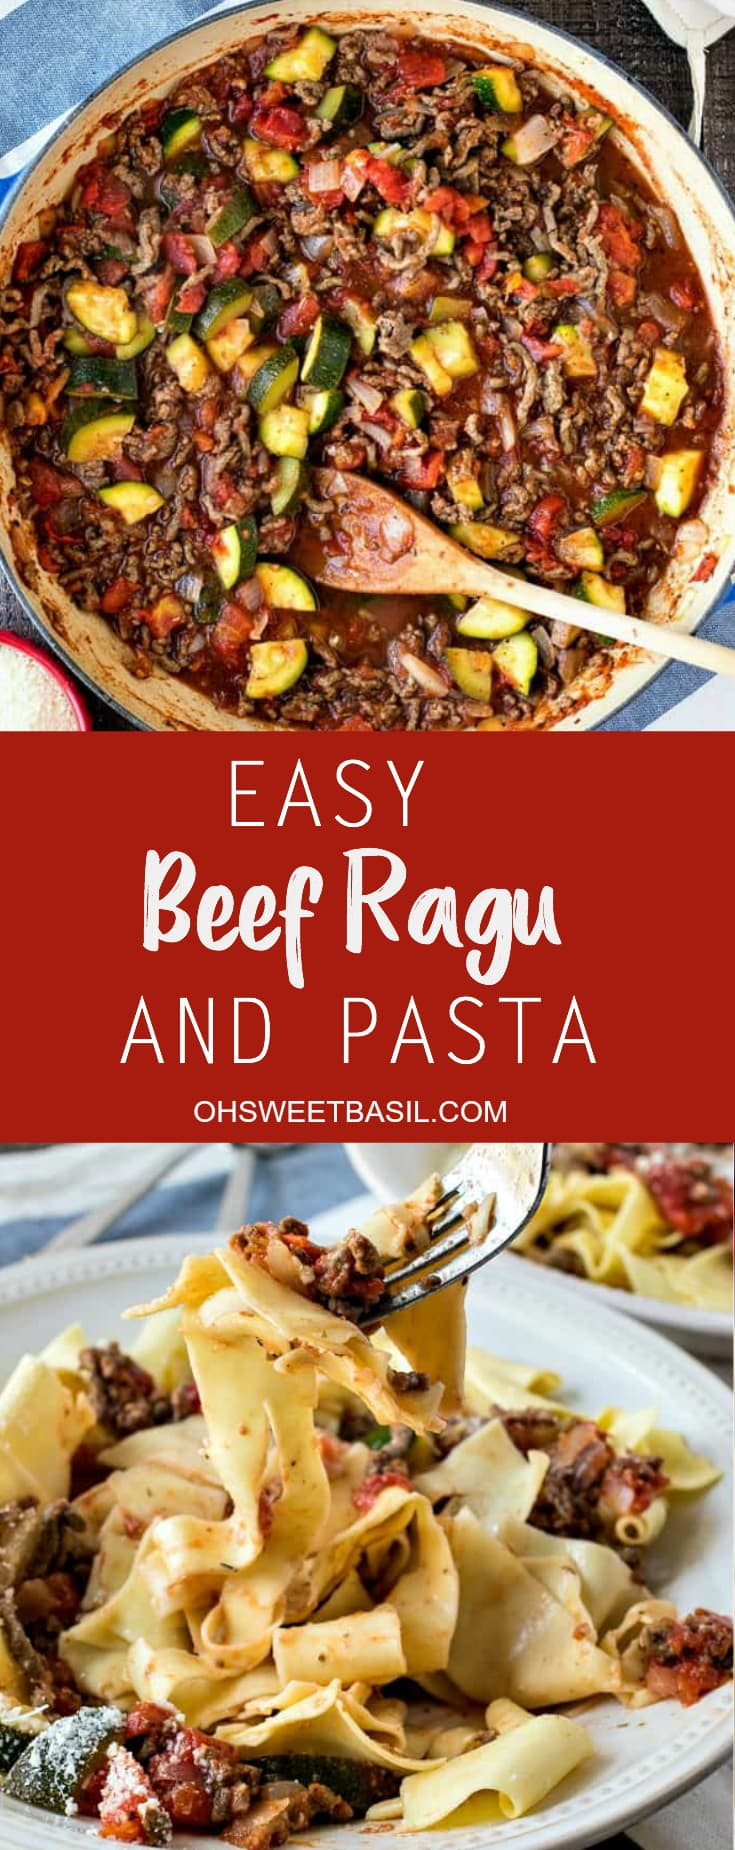 A bowl filled with zucchini, lean meat, tomato sauce and noodles which makes an Easy Beef Ragu and Pasta recipe for dinner.